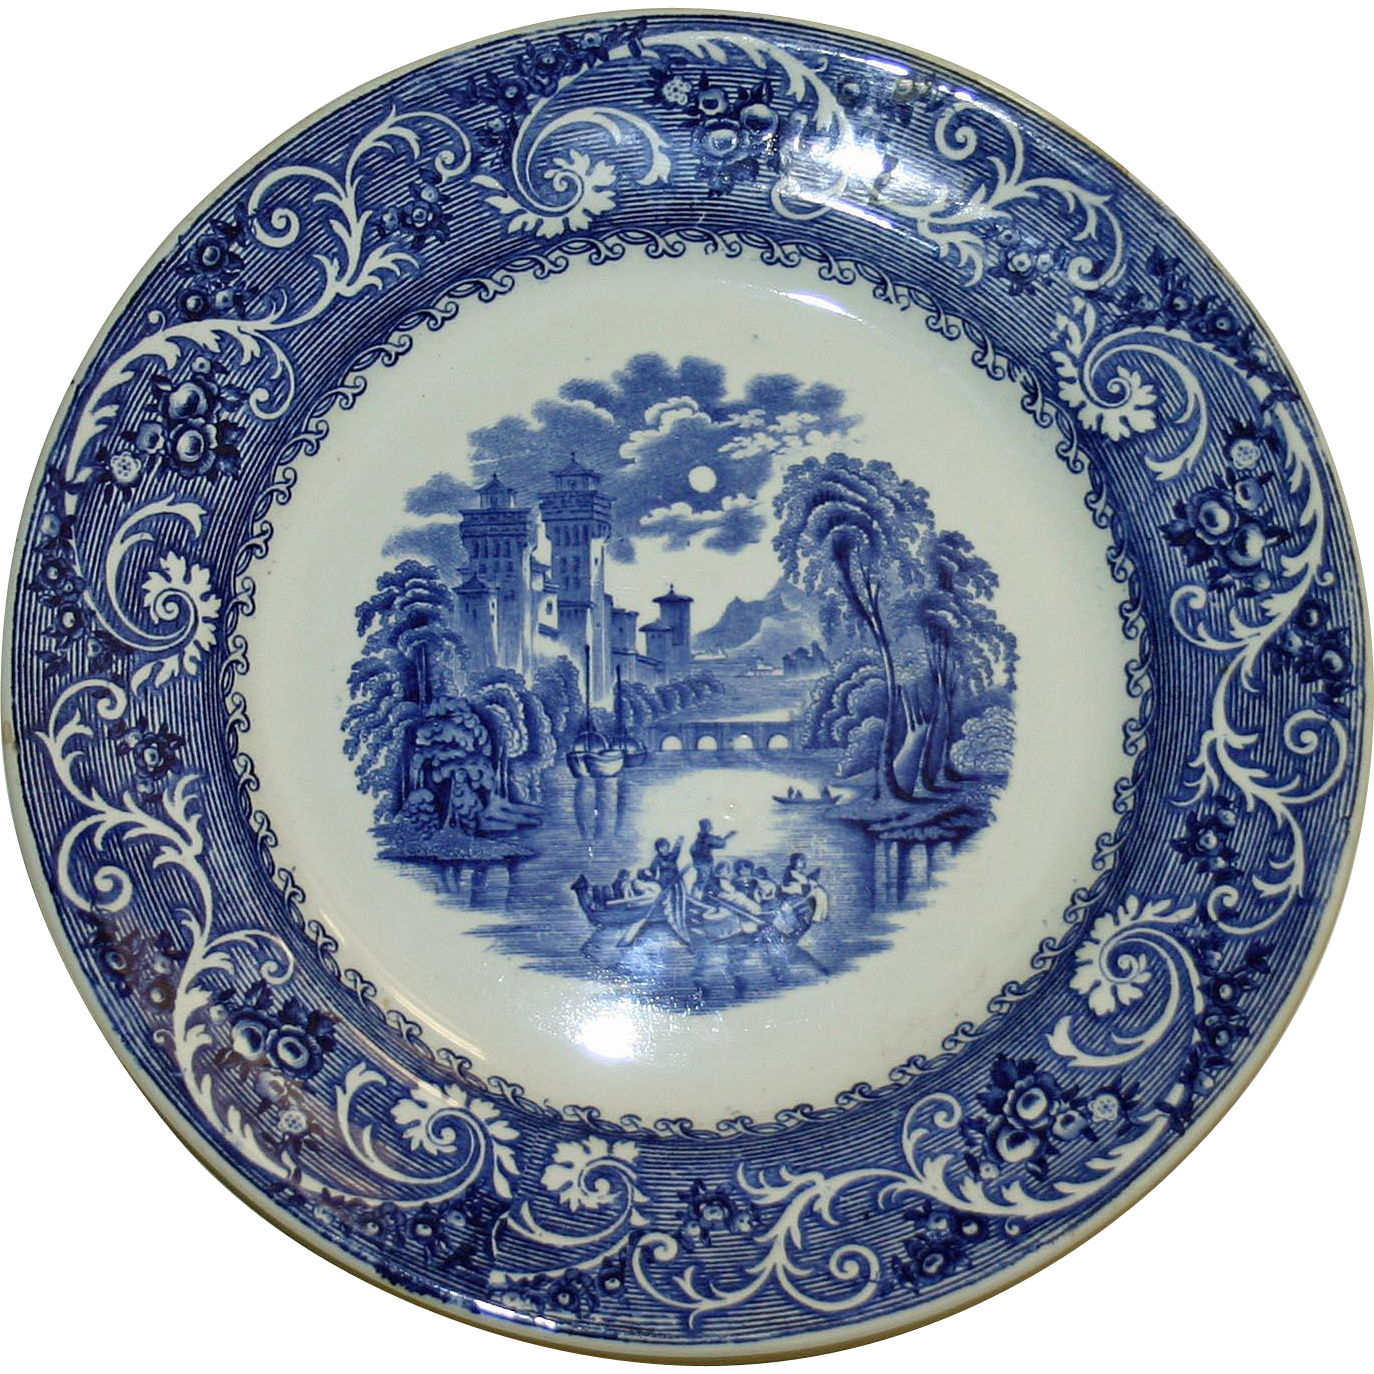 Rhine 11 Inch Transferware Plate by Ridgways Blue and White